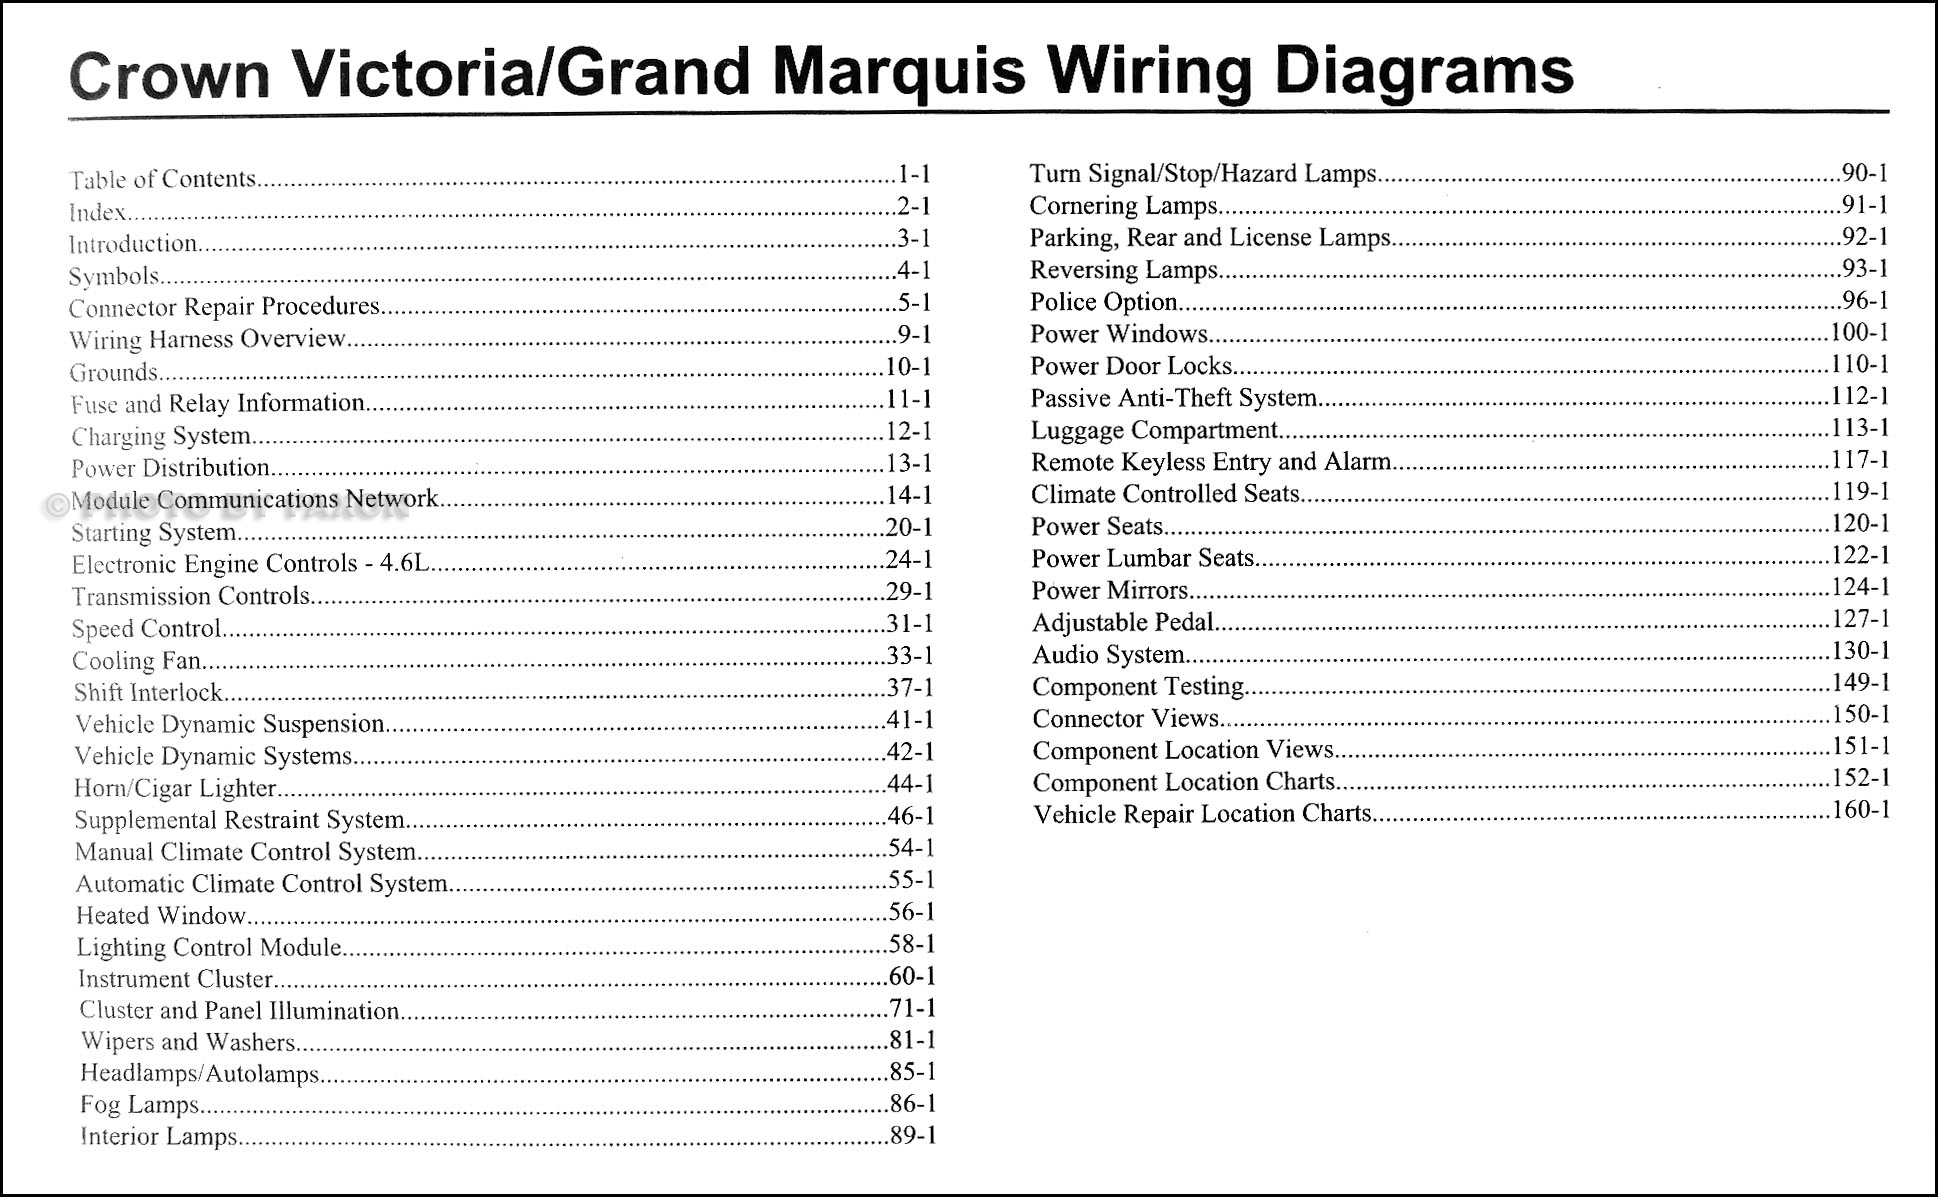 2009FordCrownVictoriaOWD TOC 2009 crown victoria & grand marquis original wiring diagram manual 2009 mercury grand marquis wiring diagram at reclaimingppi.co